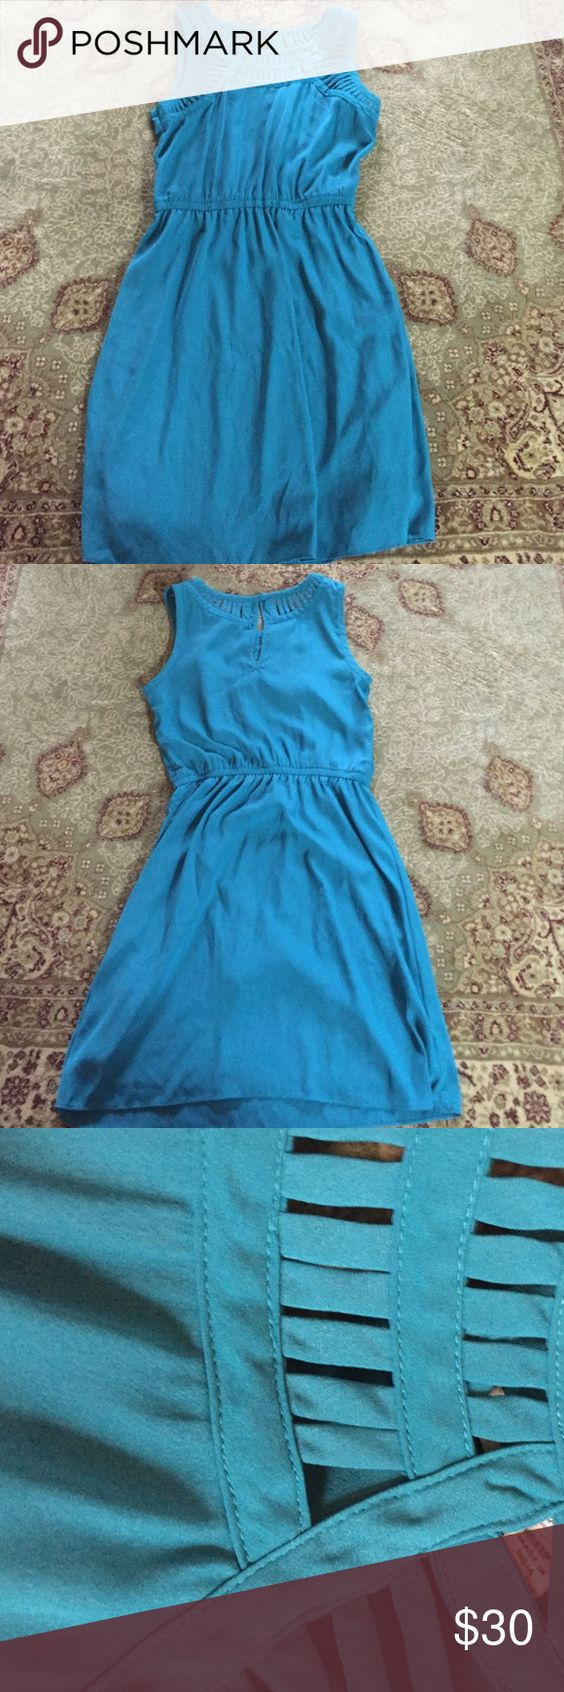 Beautiful blue dress Another one of my favorites.  Beautiful blue color don't want to part with it.  Best dresses ever from American eagle they are great for casual or nice. Doesn't fit unfortunately. American Eagle Outfitters Dresses Midi